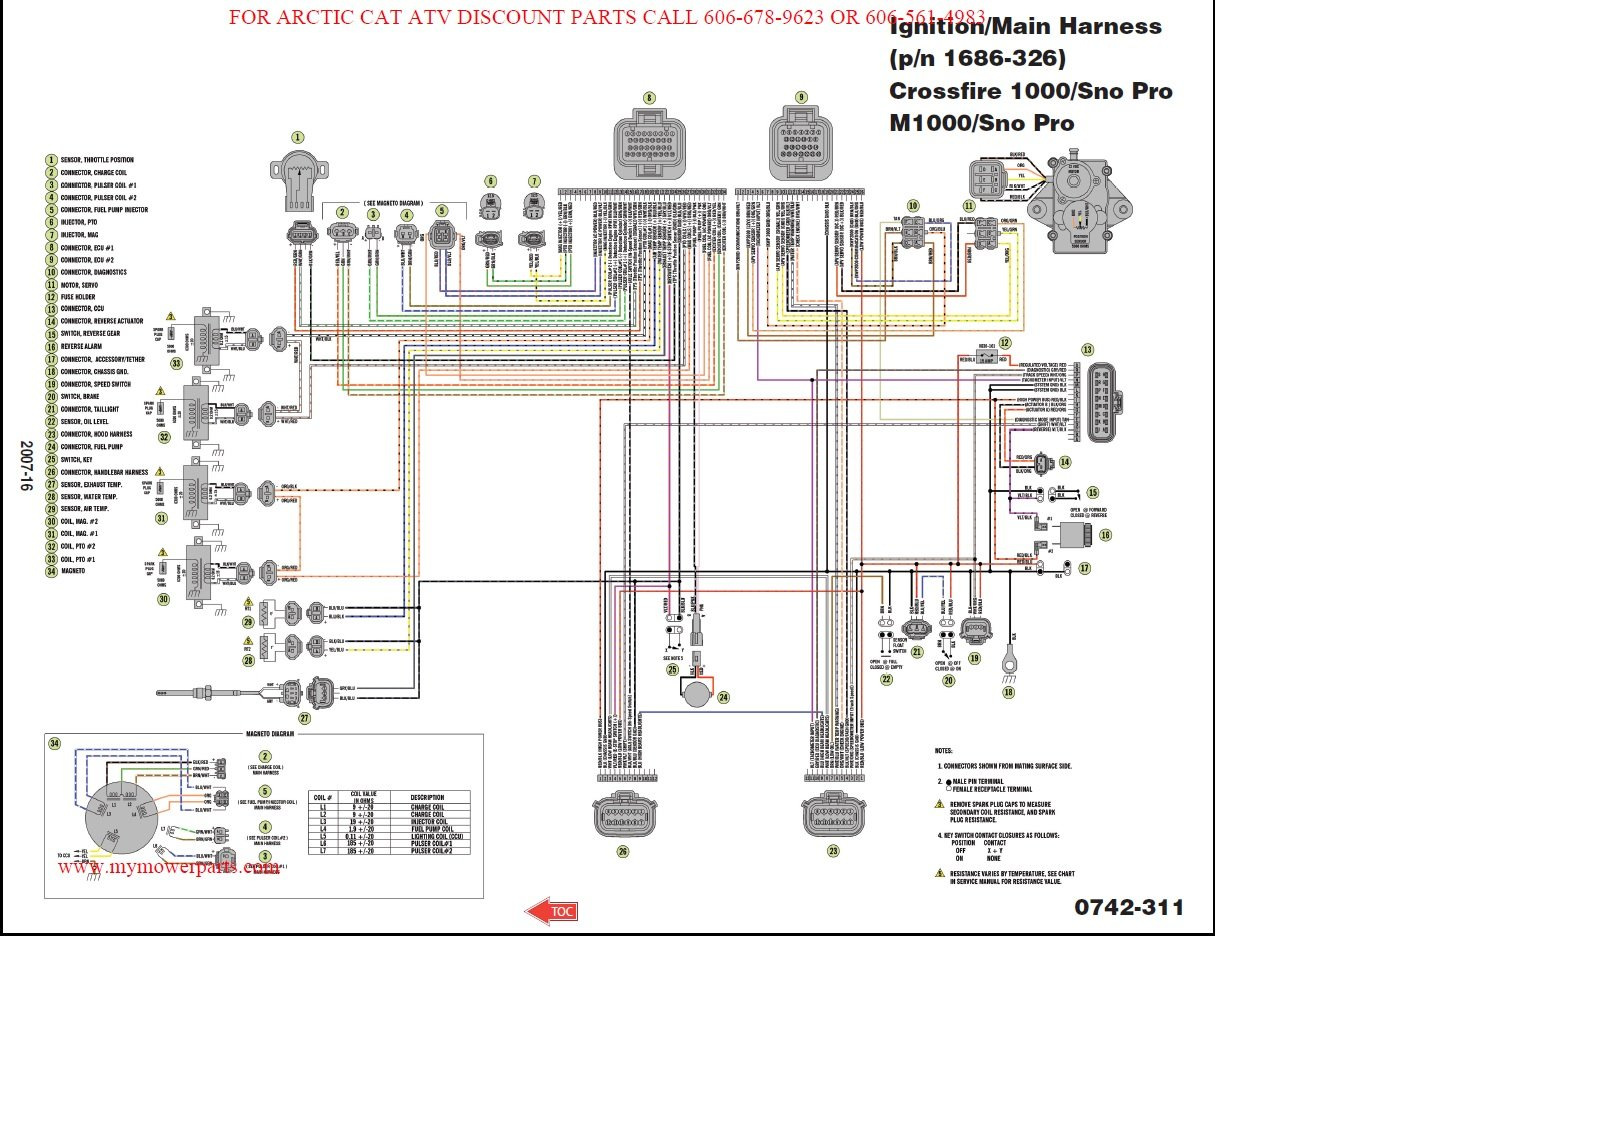 hight resolution of arctic cat snowmobile wiring diagram my wiring diagram 2001 arctic cat 400 wiring diagram 2001 arctic cat wiring diagram